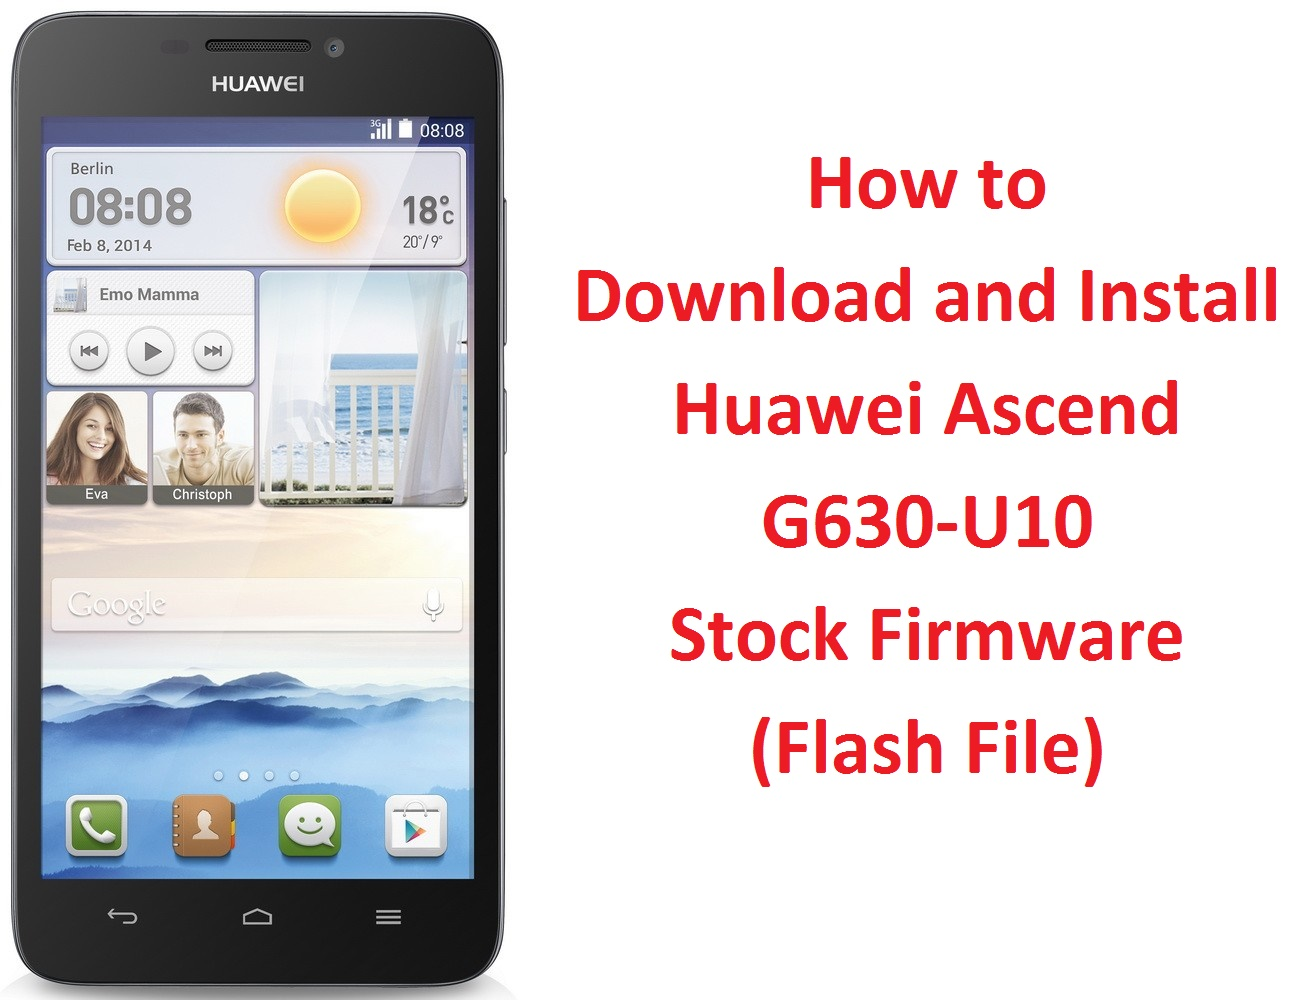 How to Download and Install Huawei Ascend G630-U10 Stock Firmware